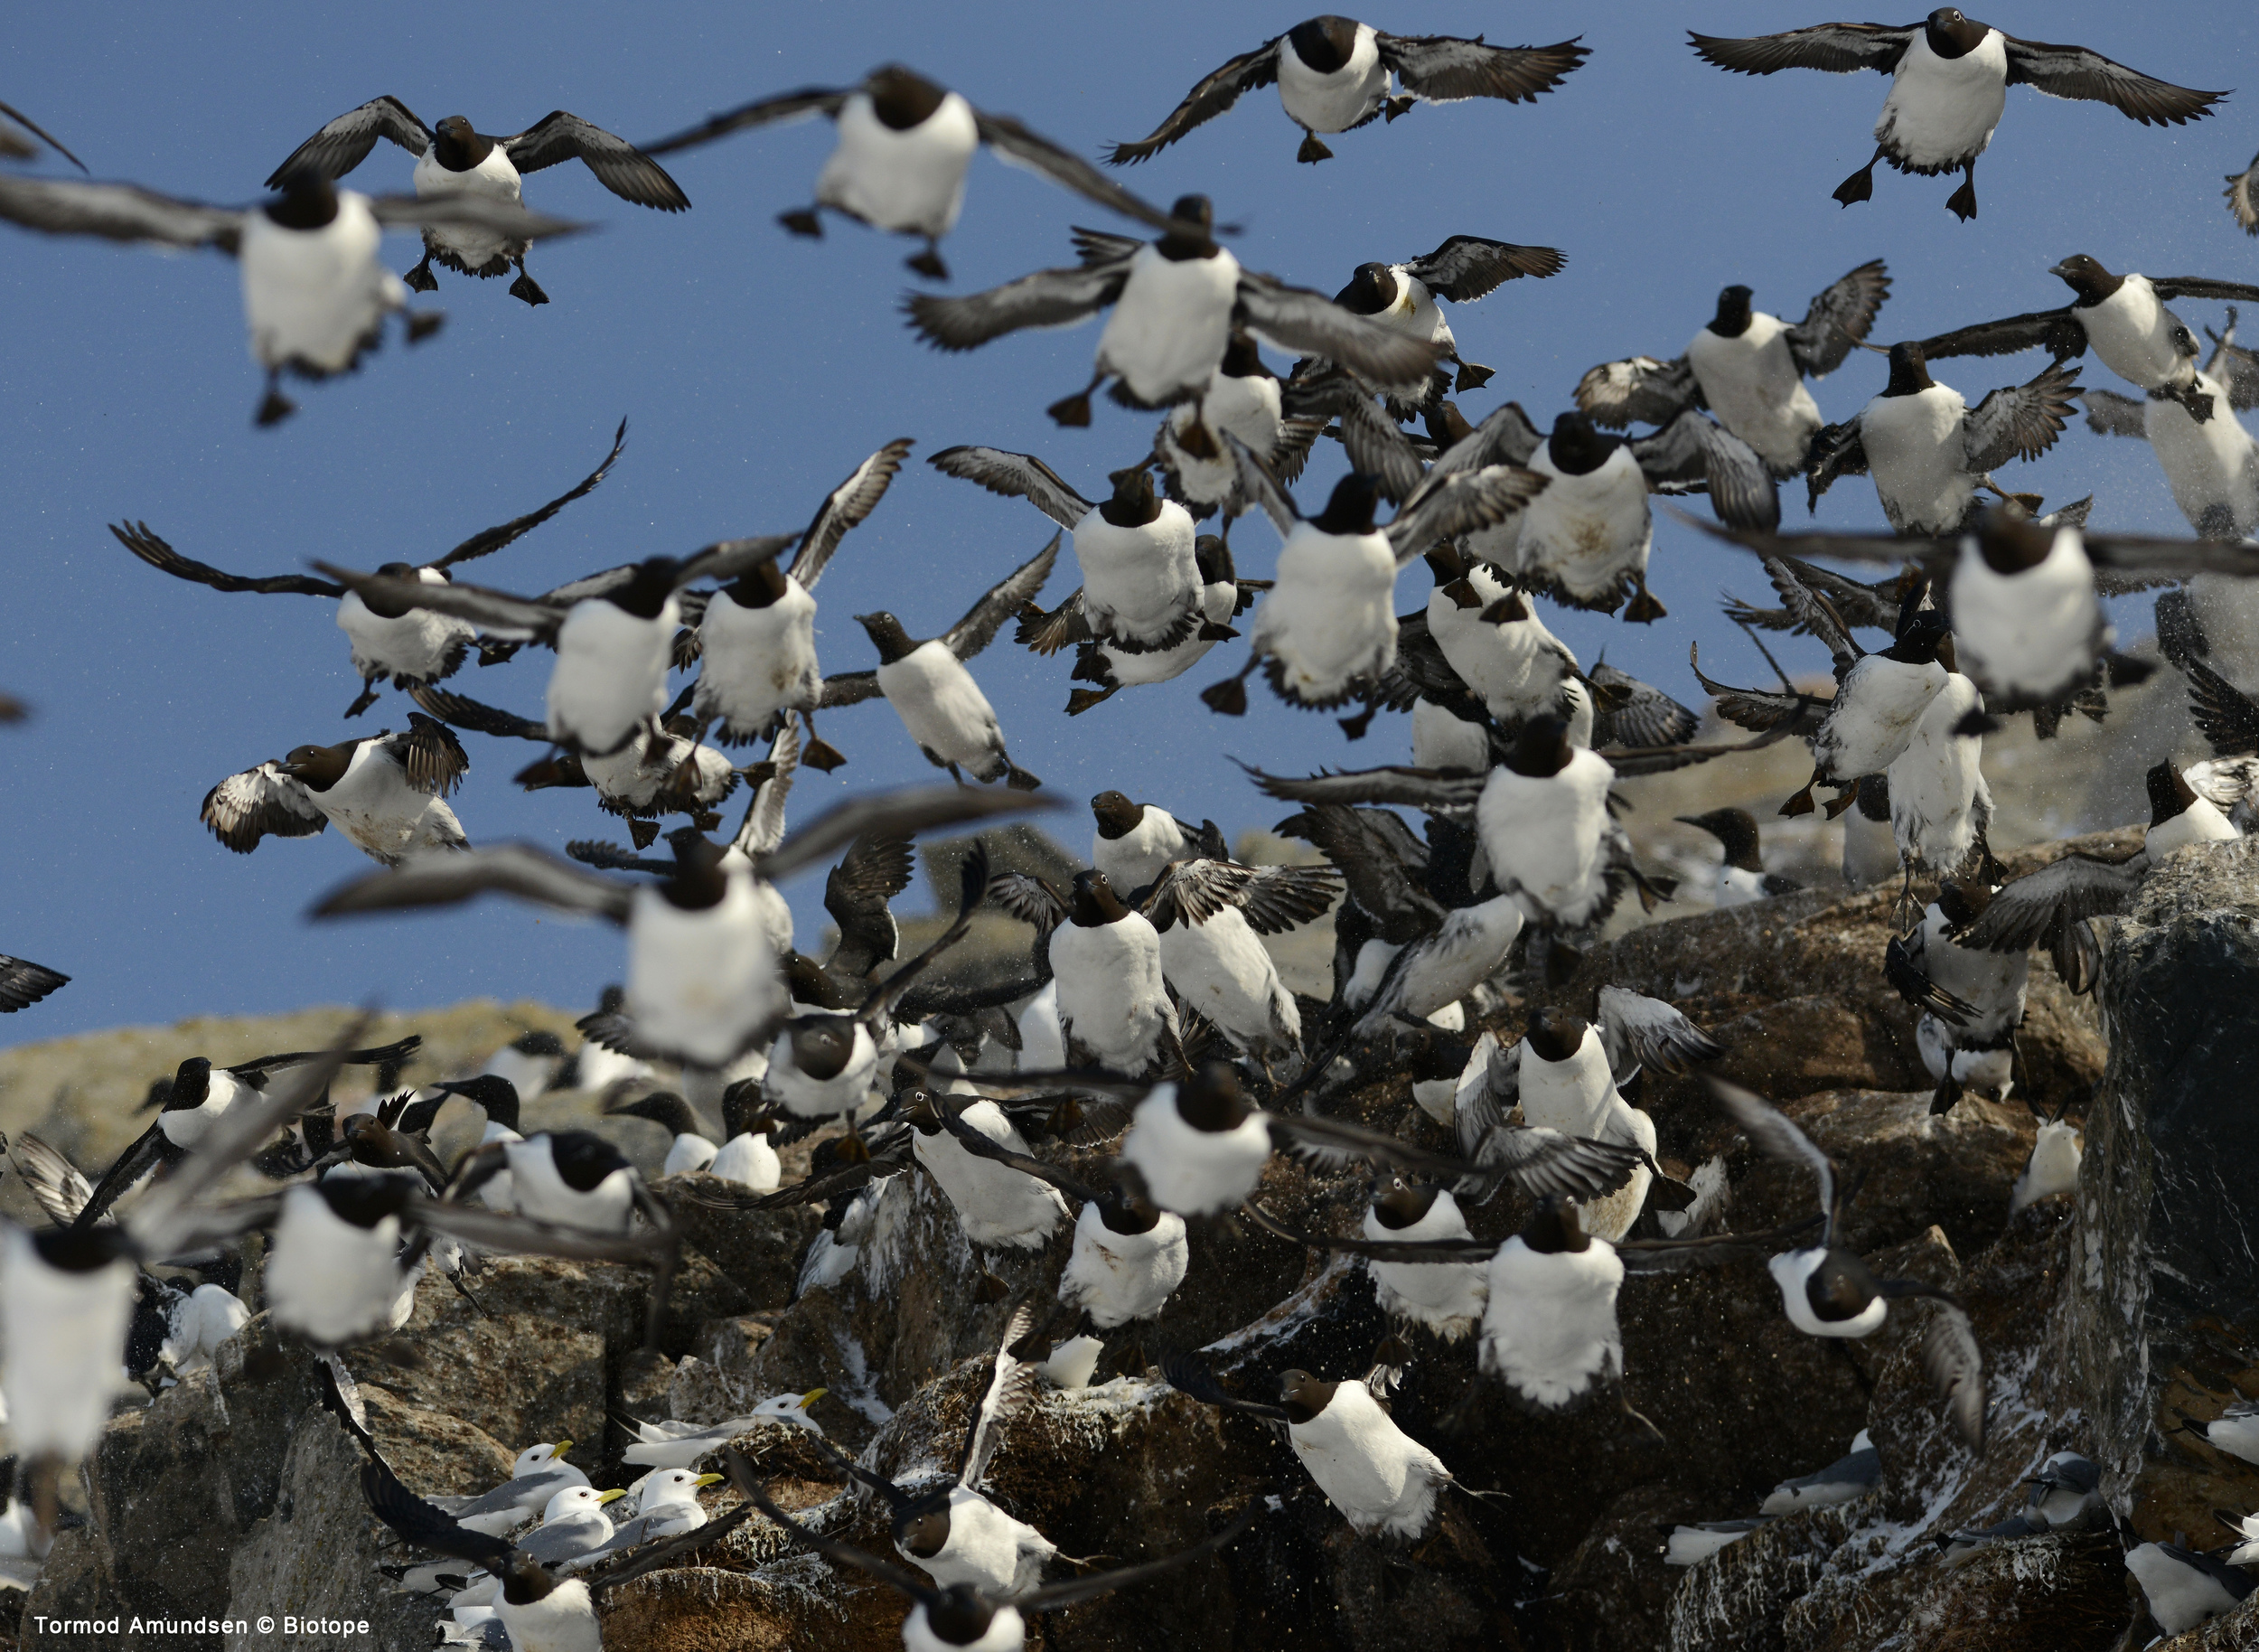 Guillemot avalanche Hornøya bird cliff March 2014 Amundsen Biotope.jpg